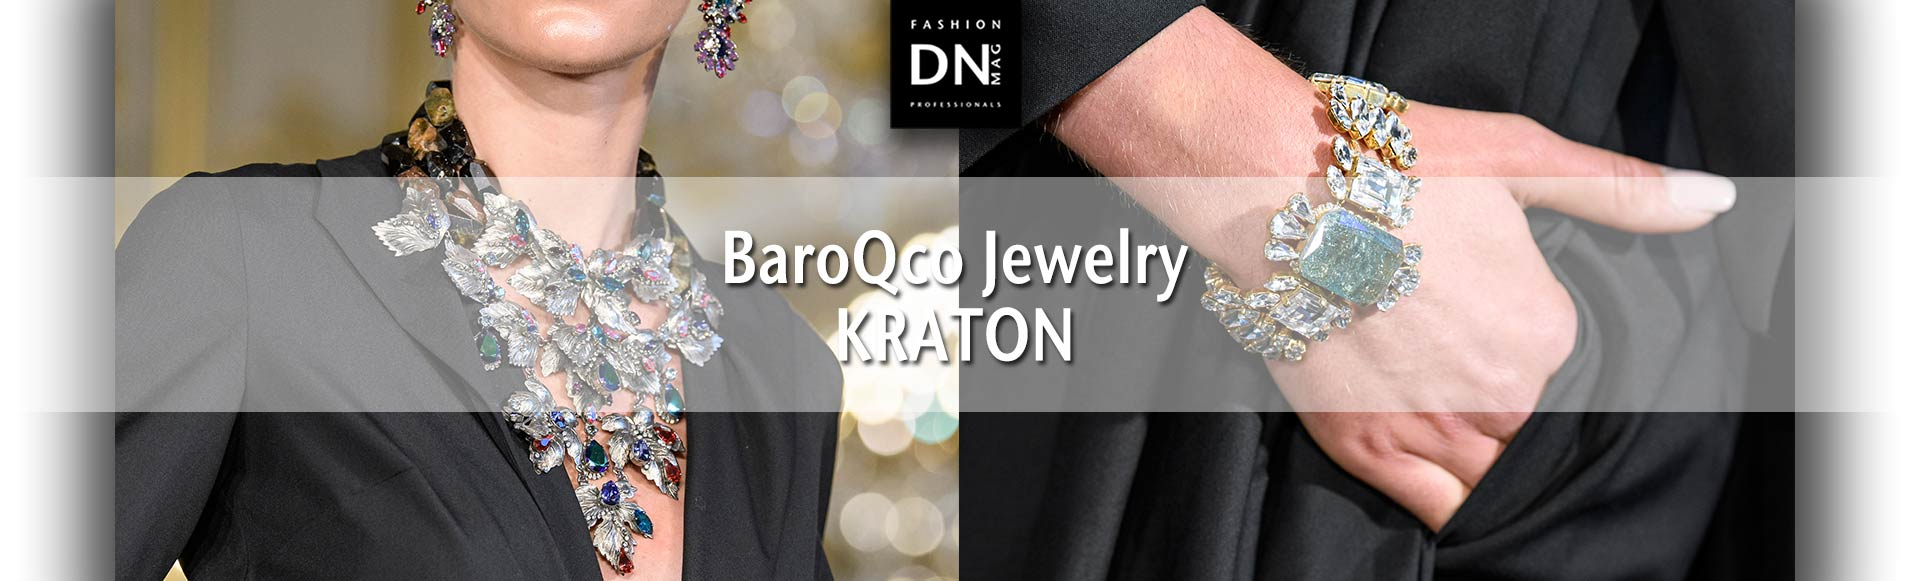 BaroQco Jewelry : Fall Winter 2019/20 KRATON Collection - Paris Fashion Week 2019 - DNMAG Fashion Professionals